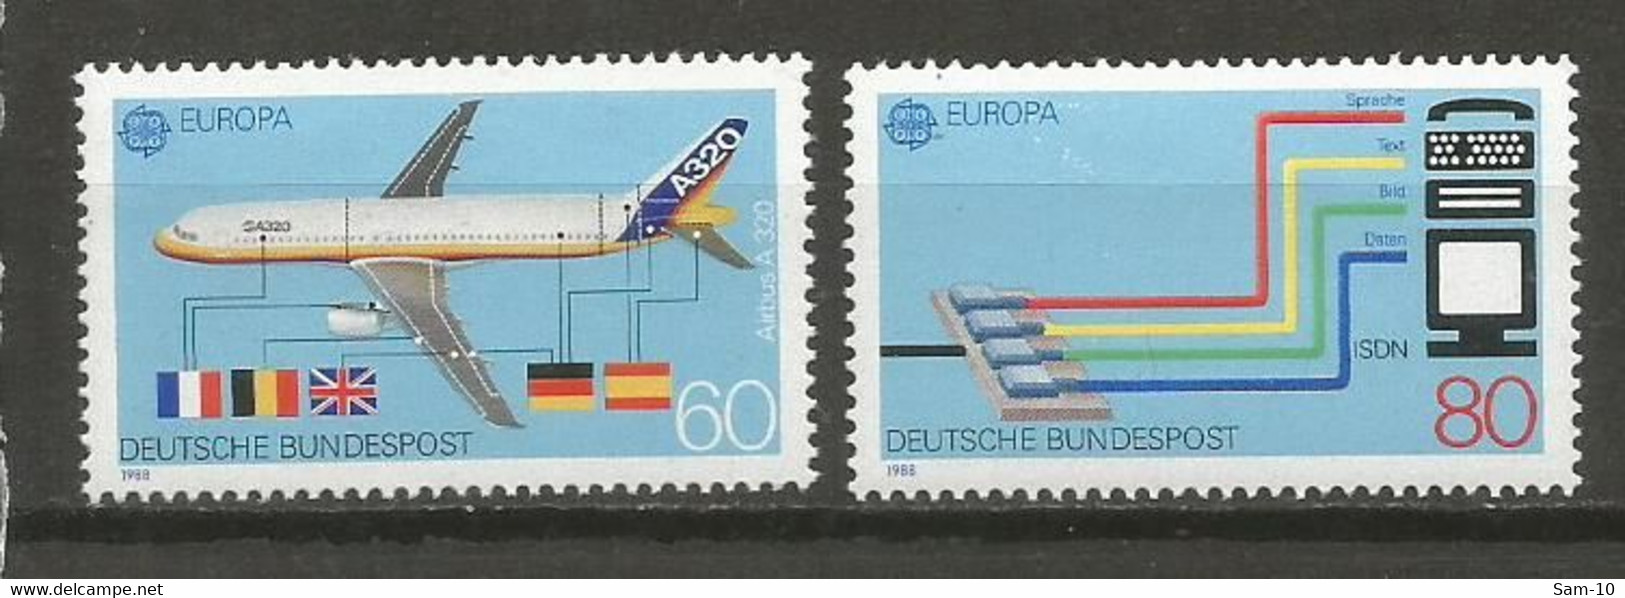 Timbre Allemagne Fédérale Neuf **  N 1199 / 1200 - Nuovi